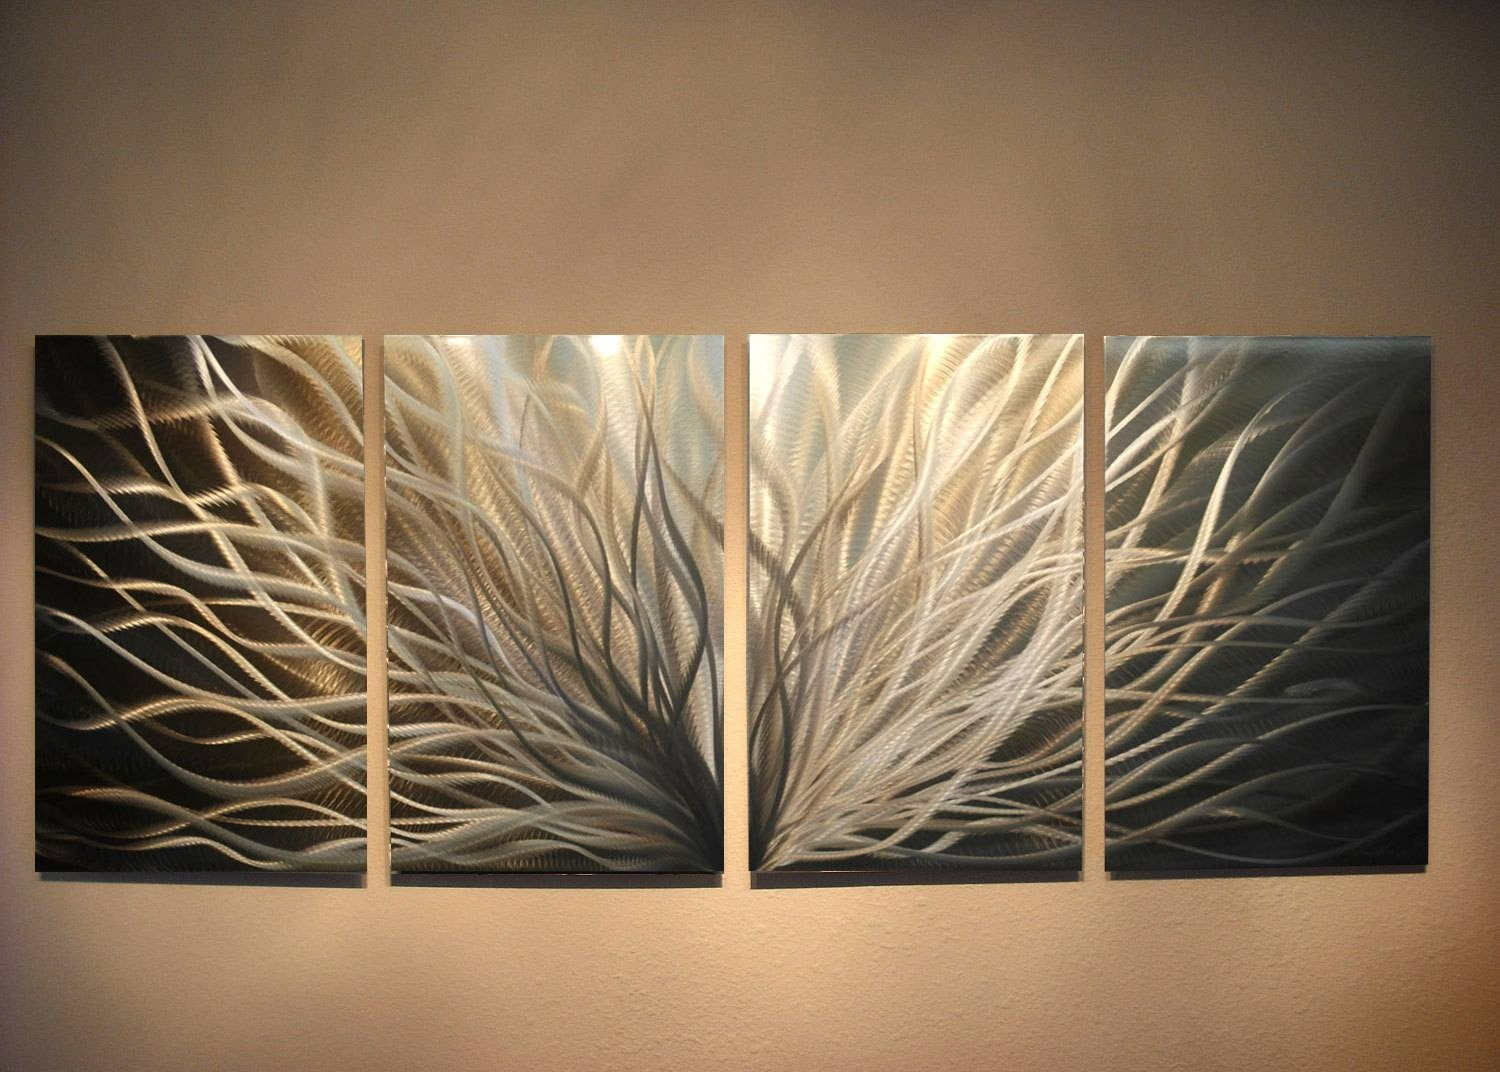 Metal Art Wall Art Decor Aluminum Abstract Contemporary Modern With Regard To 2018 Silver And Gold Wall Art (View 10 of 15)